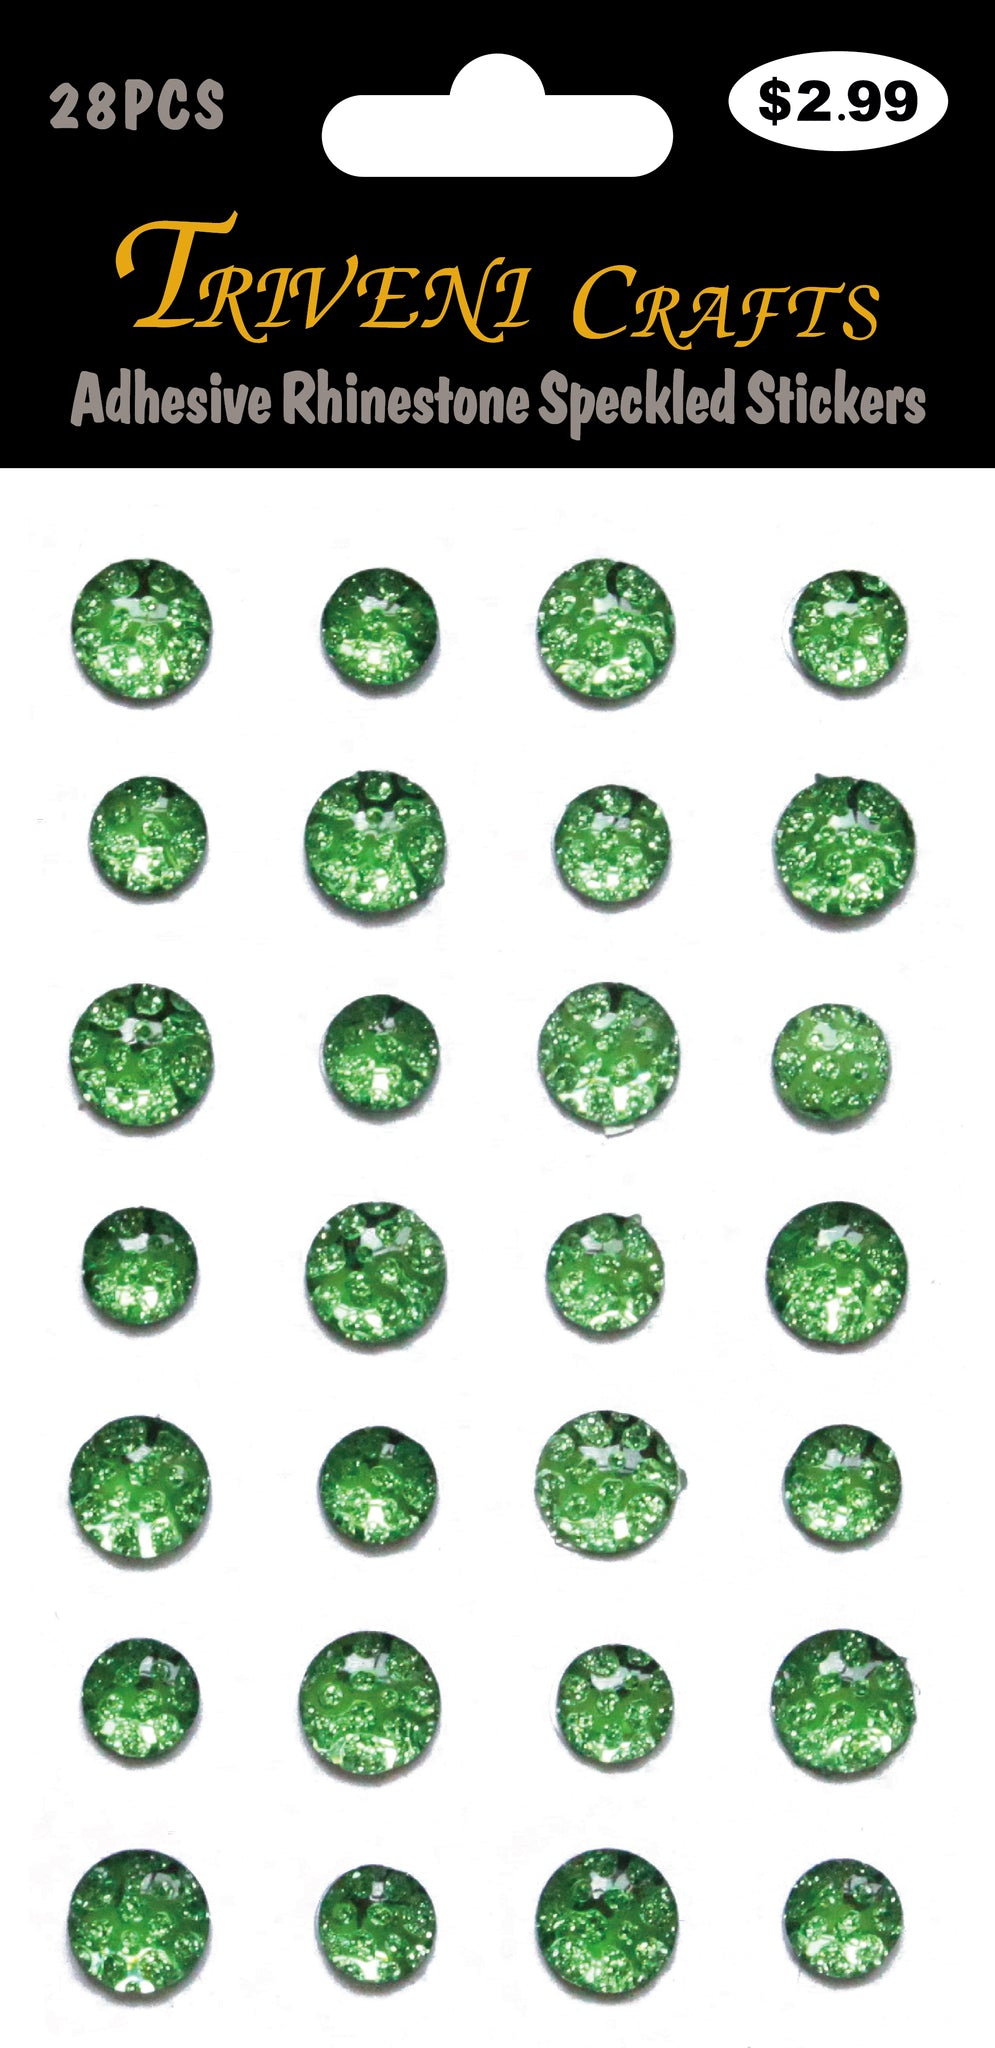 Adhesive Rhinestone Speckled Stickers - Green